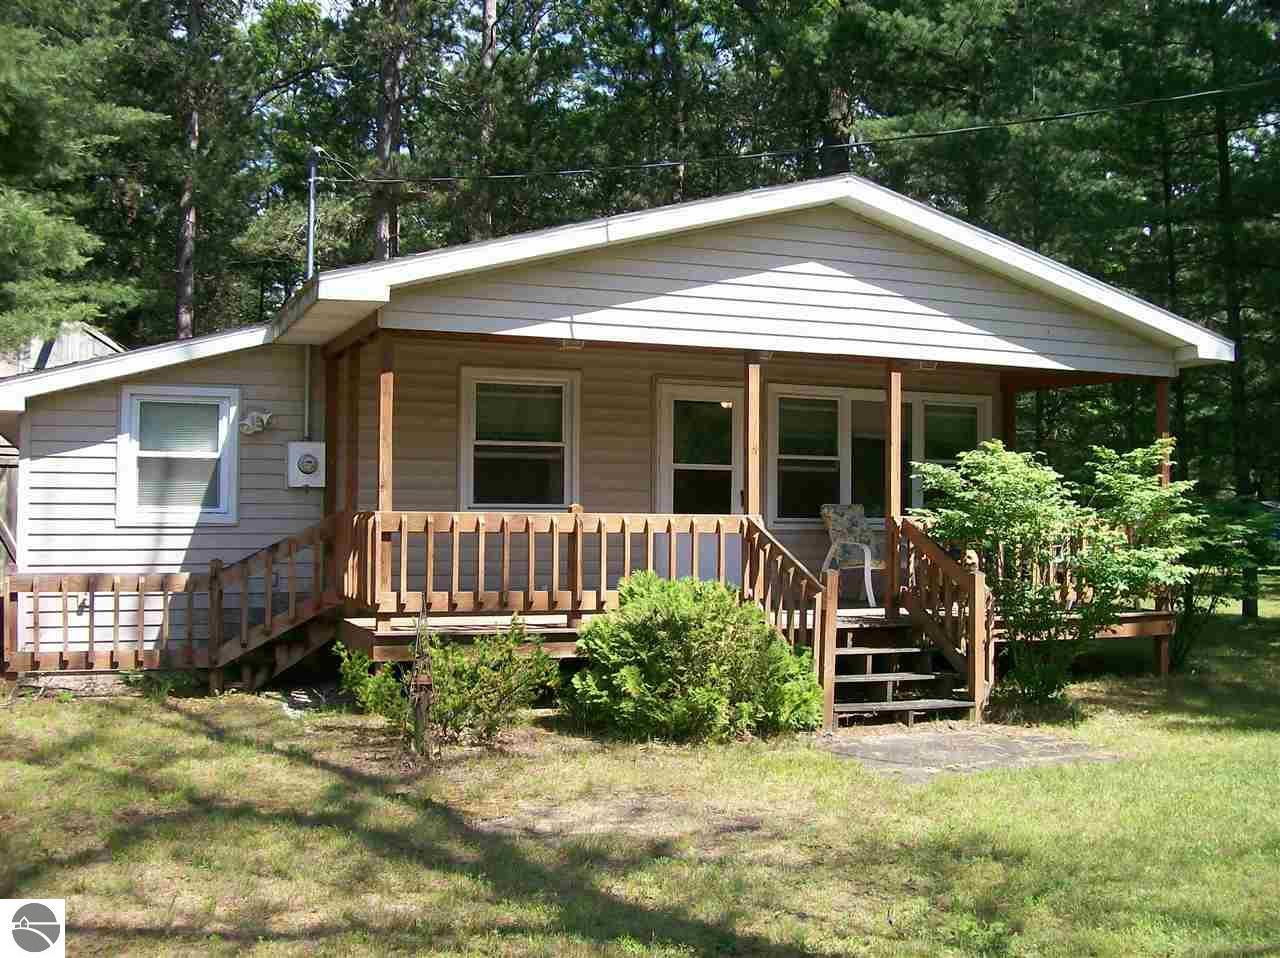 2 bed / 1 bath Home in Prescott for $49,900